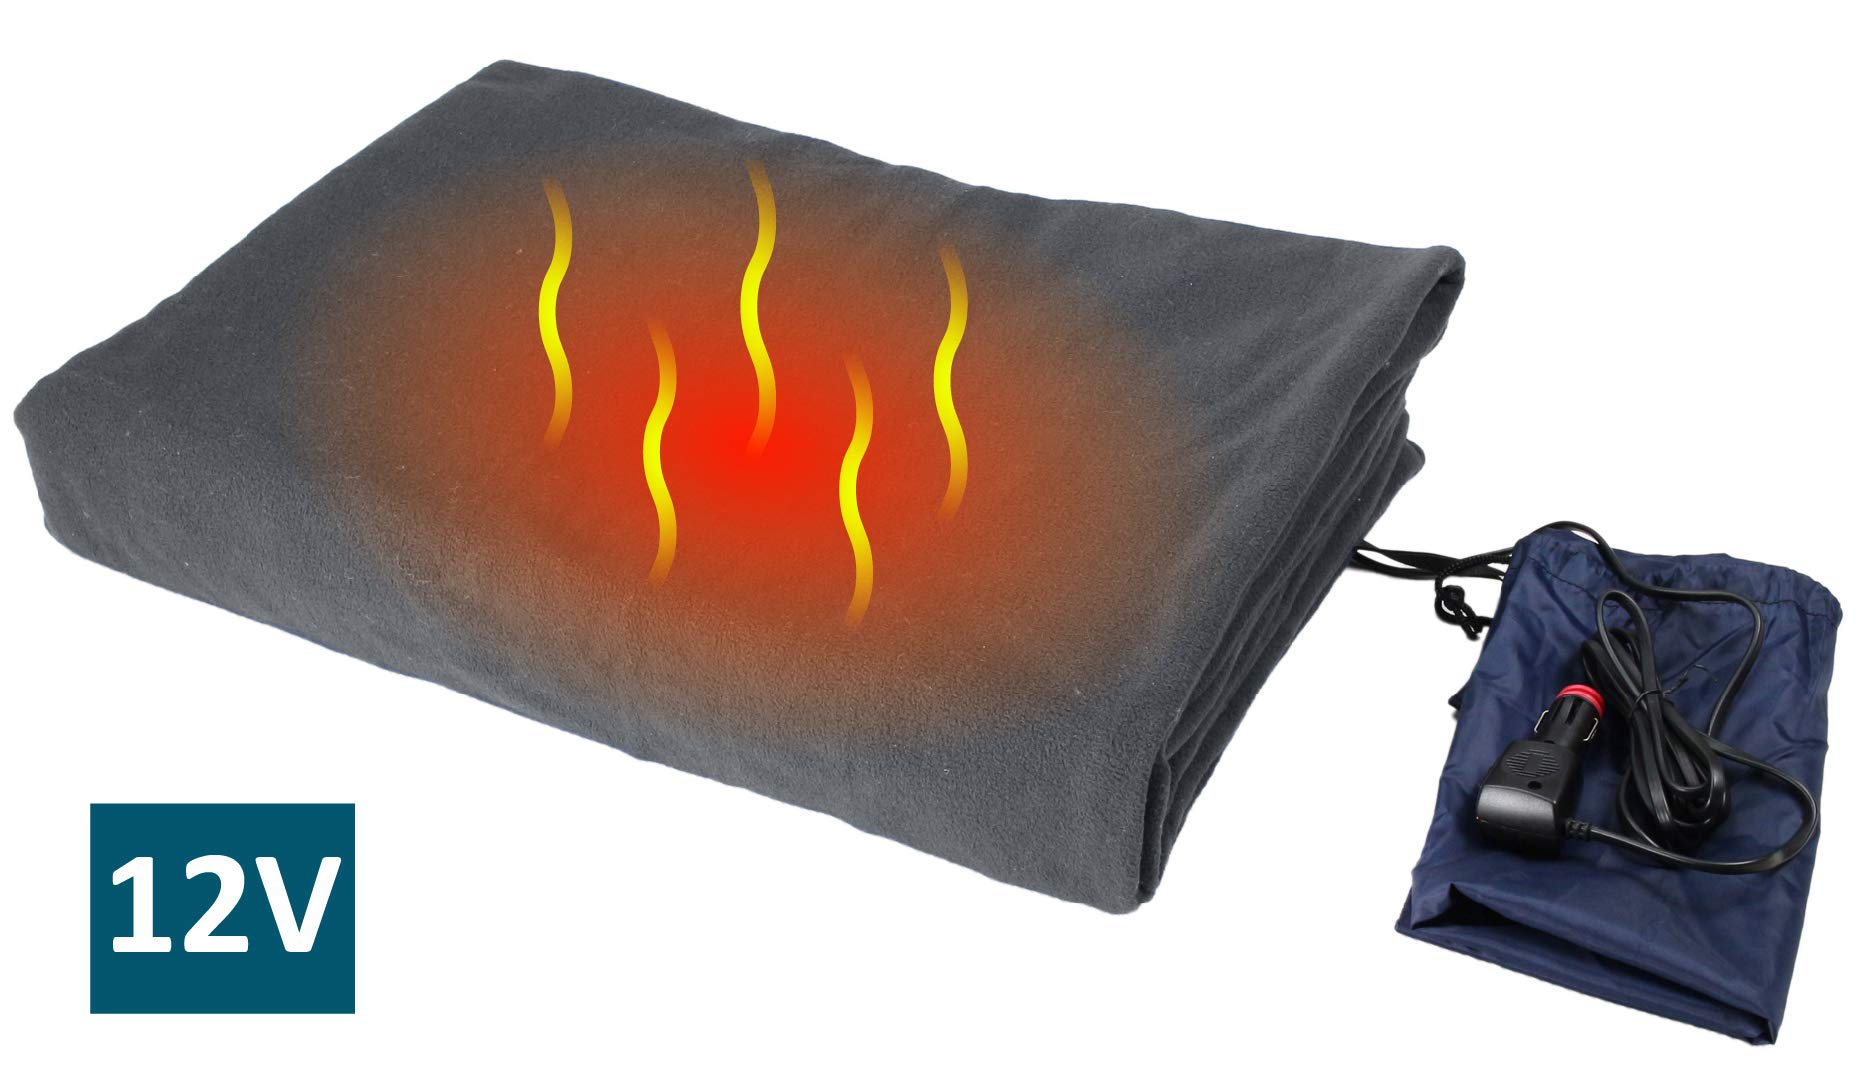 ObboMed SH-4210G Ultra-Soft Deluxe Electric 12V, 60W Luxurious Comfy Polar Fleece Heated Travel Car Blanket, with Premium Cigarette Lighter Plug for Automobile, Vehicle, Gray, Size 61'' x 41.3''